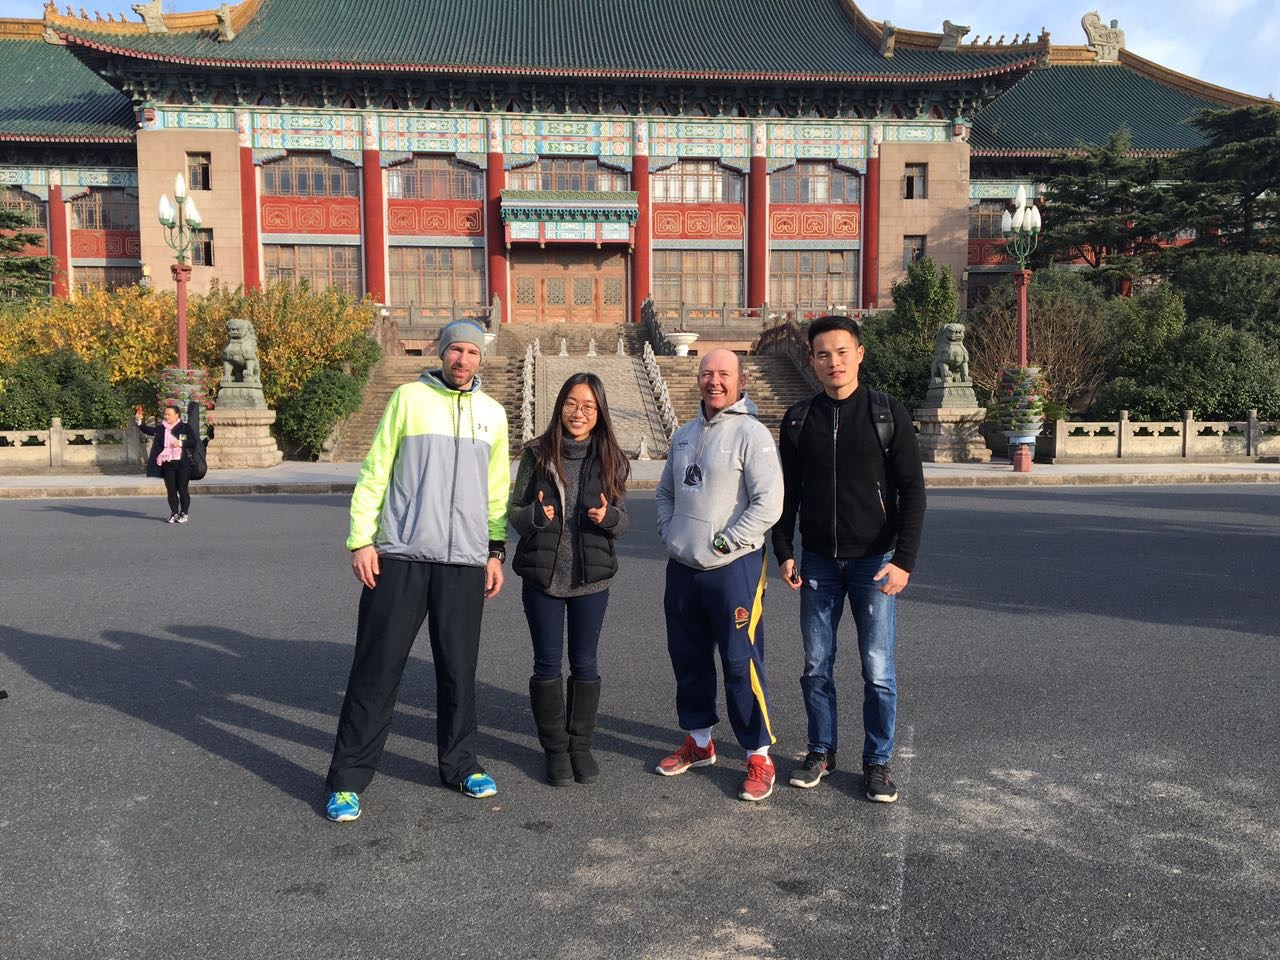 With Dave Sutton, a British S & C Coach working in Shanghai, the beautiful and talented Milo Lee, myself and Zac Bo from Beijing Yanding Co. in front of the old Municipal Administration Building of Shanghai, now located within the Shanghai University of Sport campus.